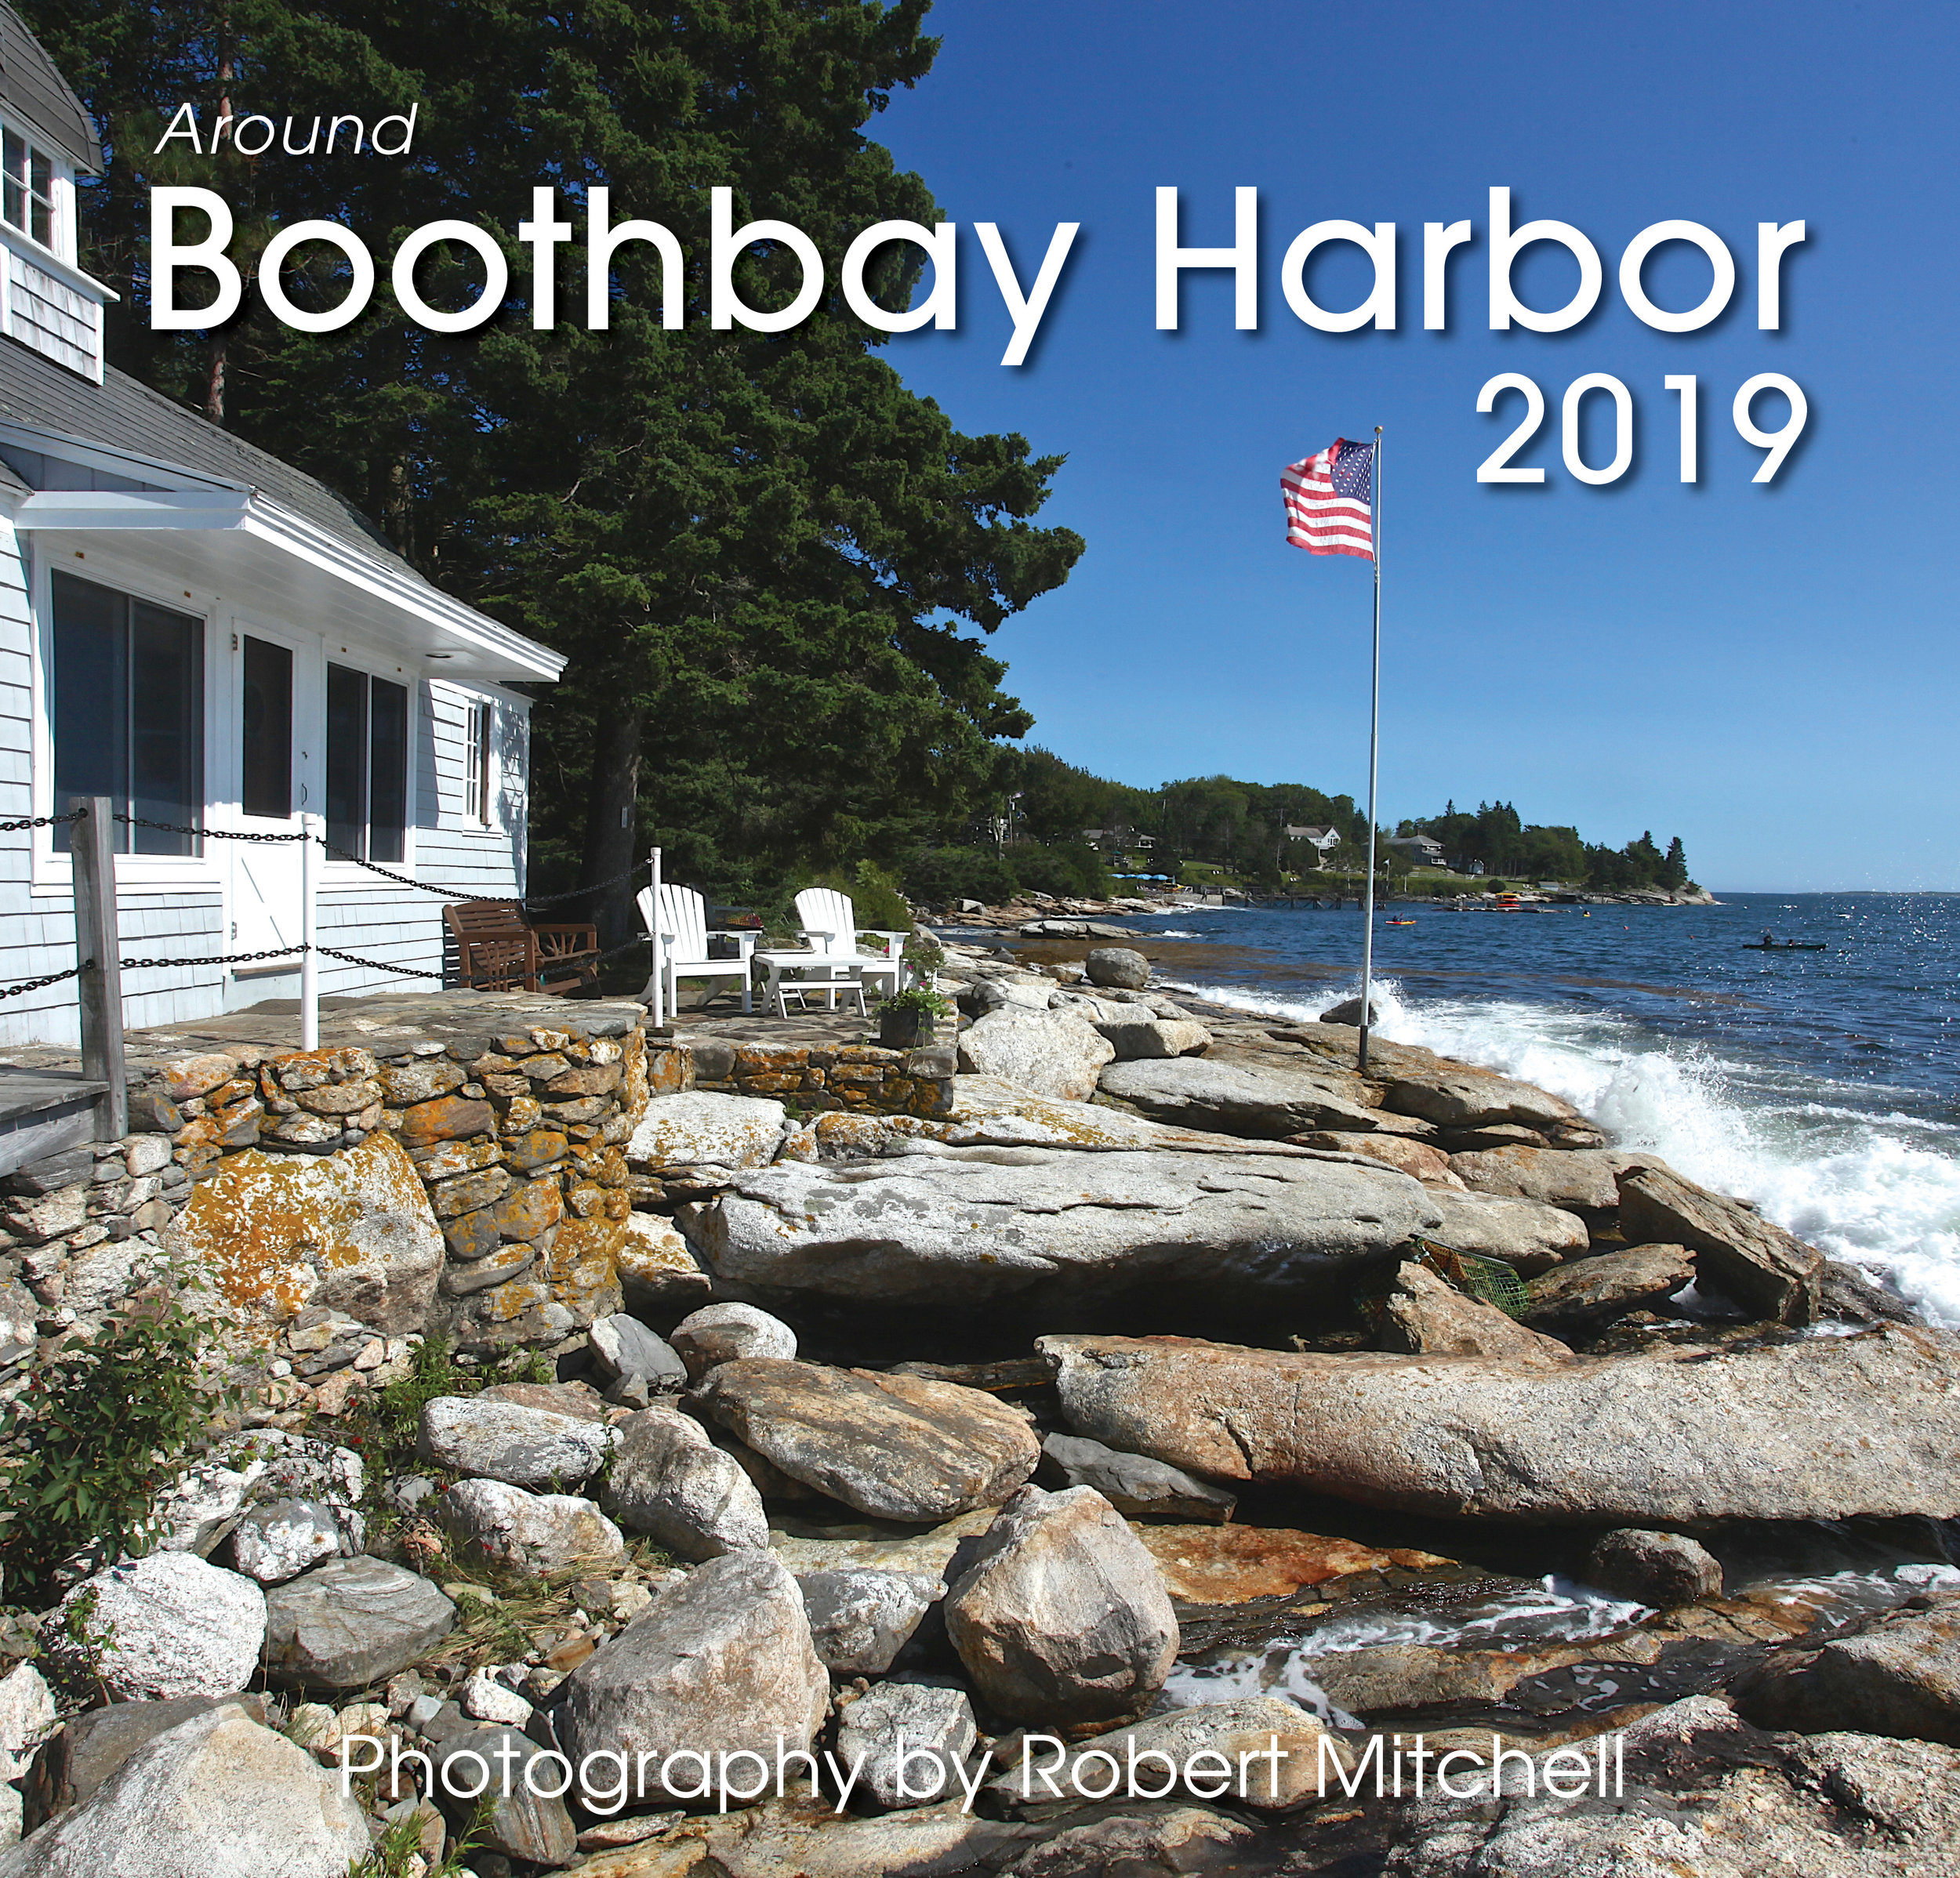 Click image above to view this year's calendar and order online.